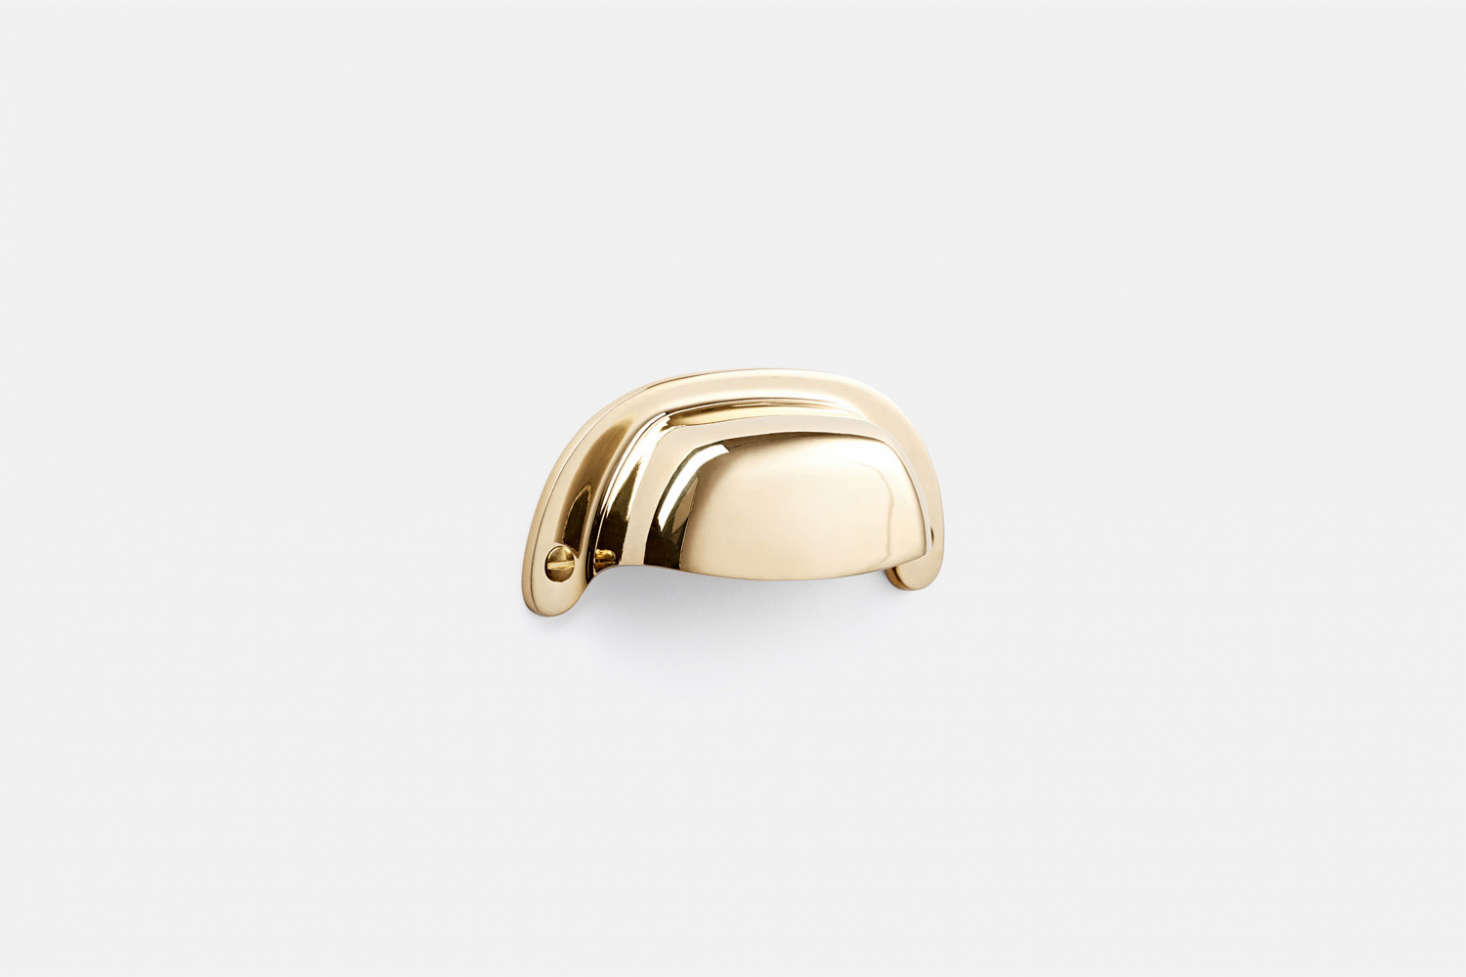 Also from Rejuvenation, the unlacquered brass Massey Bin Pull is $ each.